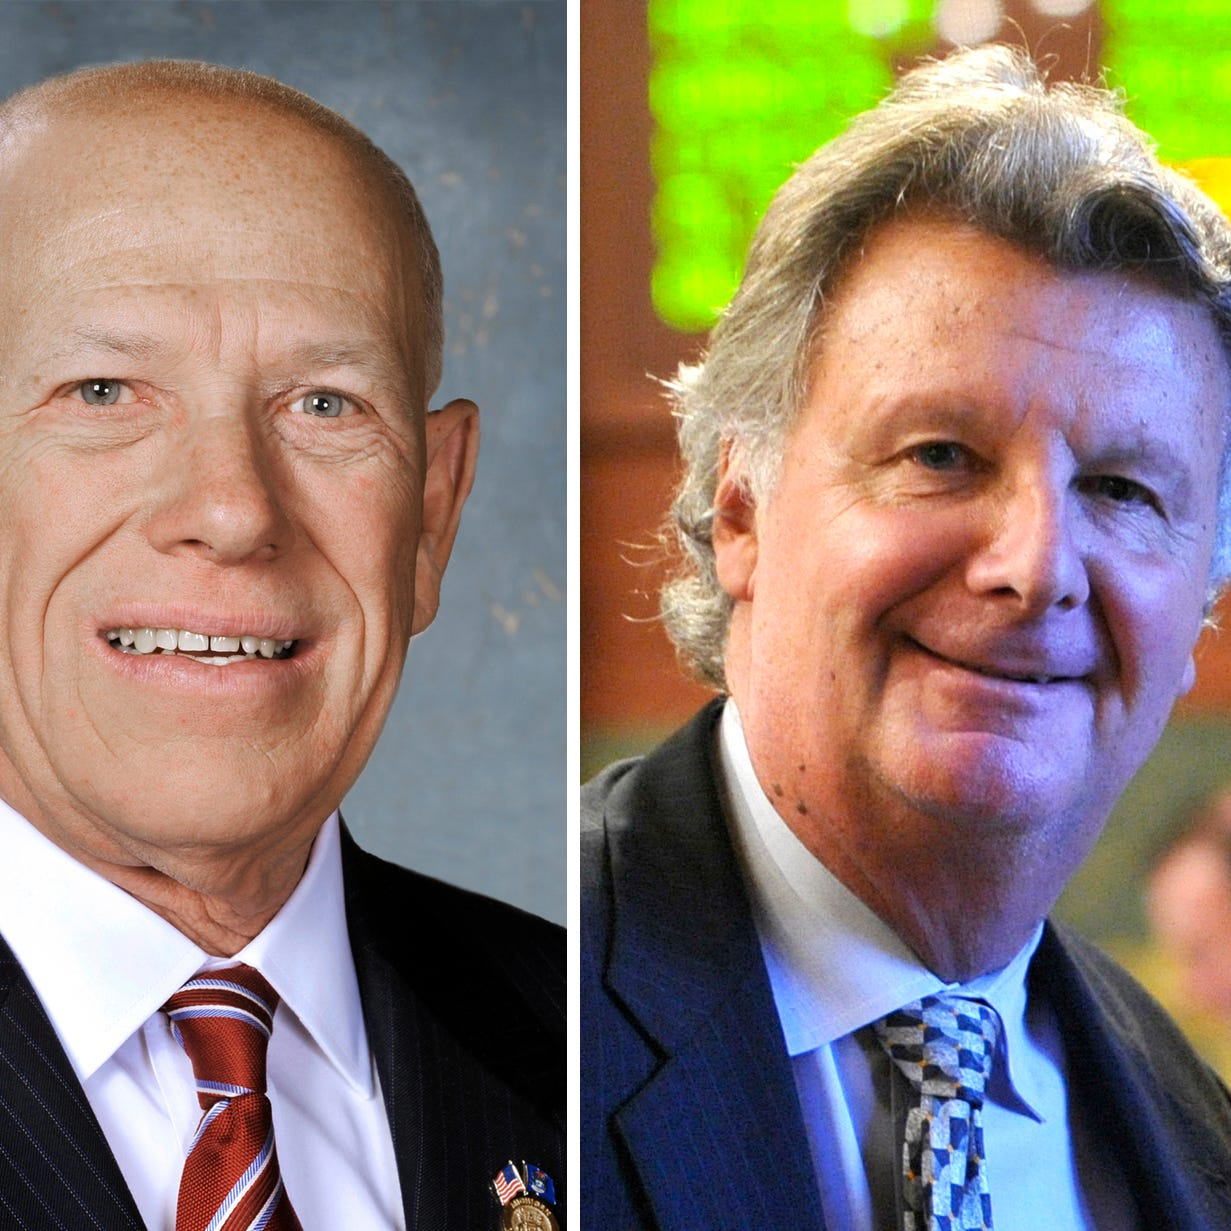 Bill could provide a potential $92K windfall for 2 Michigan senators